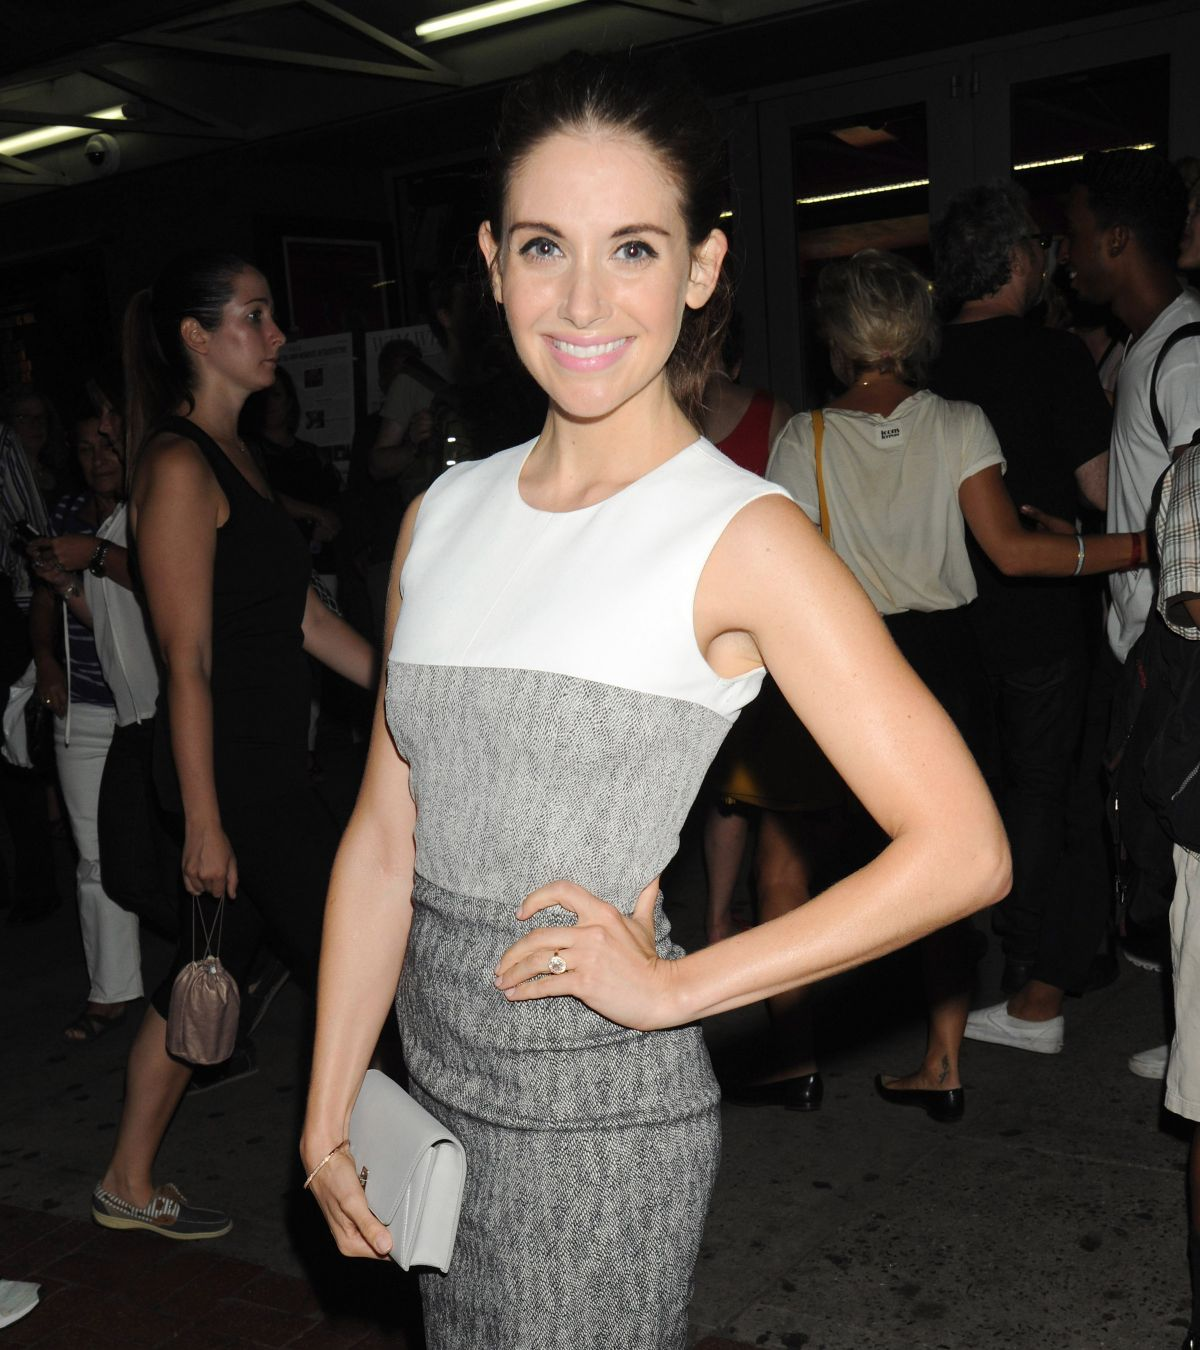 ALISON BRIE at Sleeping With Other People Screening in New York 09/01/2015